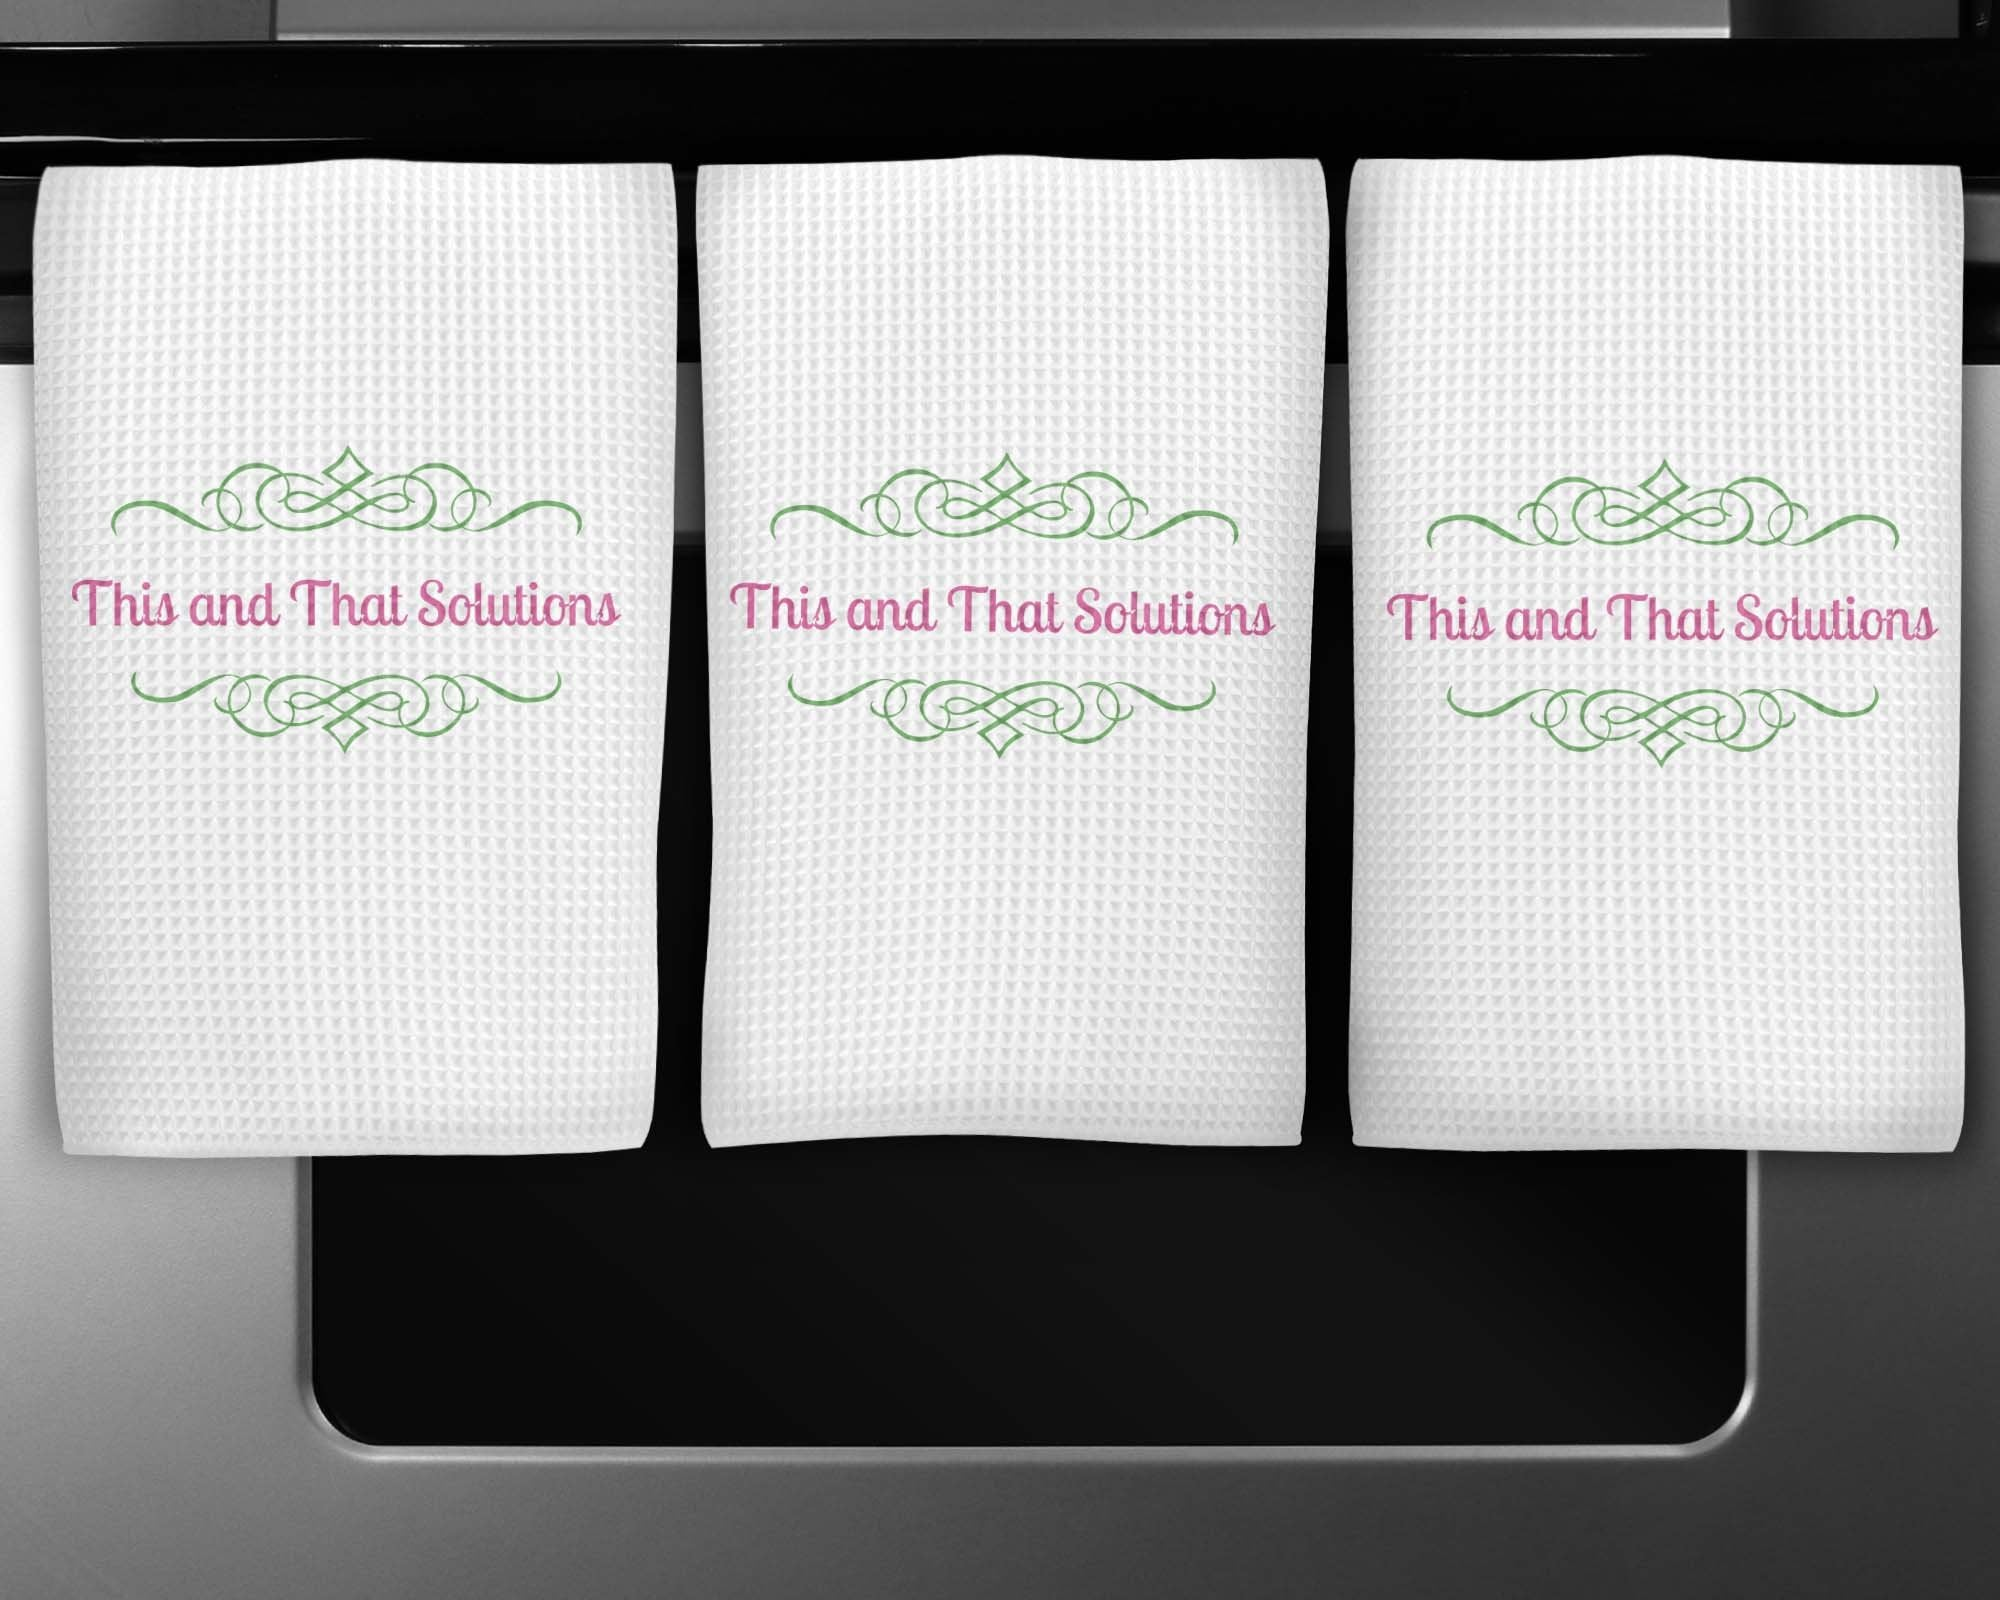 Dishcloths & Kitchen Towels | Personalized Hand Towel Waffle Textured | Custom Kitchen Gifts | Company Logo | This and That Solutions | Personalized Gifts | Custom Home Décor